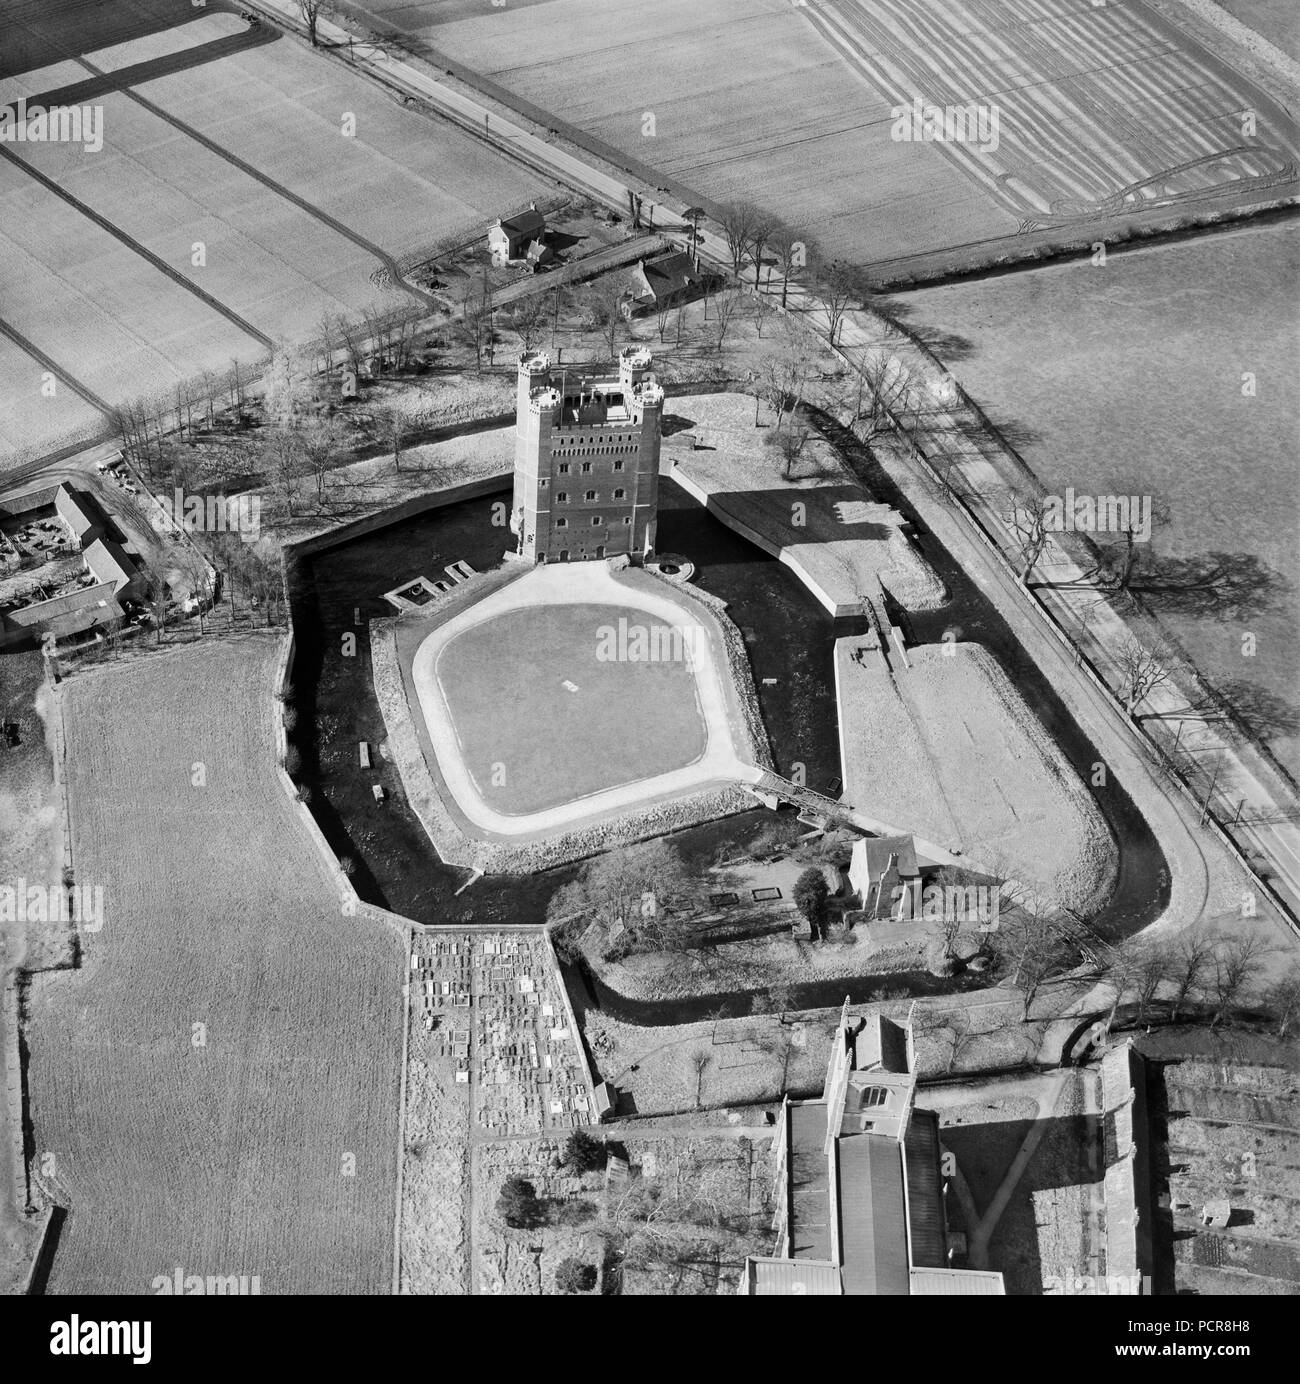 Tattershall Castle, Lincolnshire, 1951. Aerial view of the tower and moats. A rare example of a fortified medieval house, the brick tower was built between the 1430s and 1440s on the site of a 13th century castle. Lord Curzon of Kedleston famously saved it from destruction in 1911 and used it as a catalyst to force key heritage protection legislation through parliament in 1913. - Stock Image